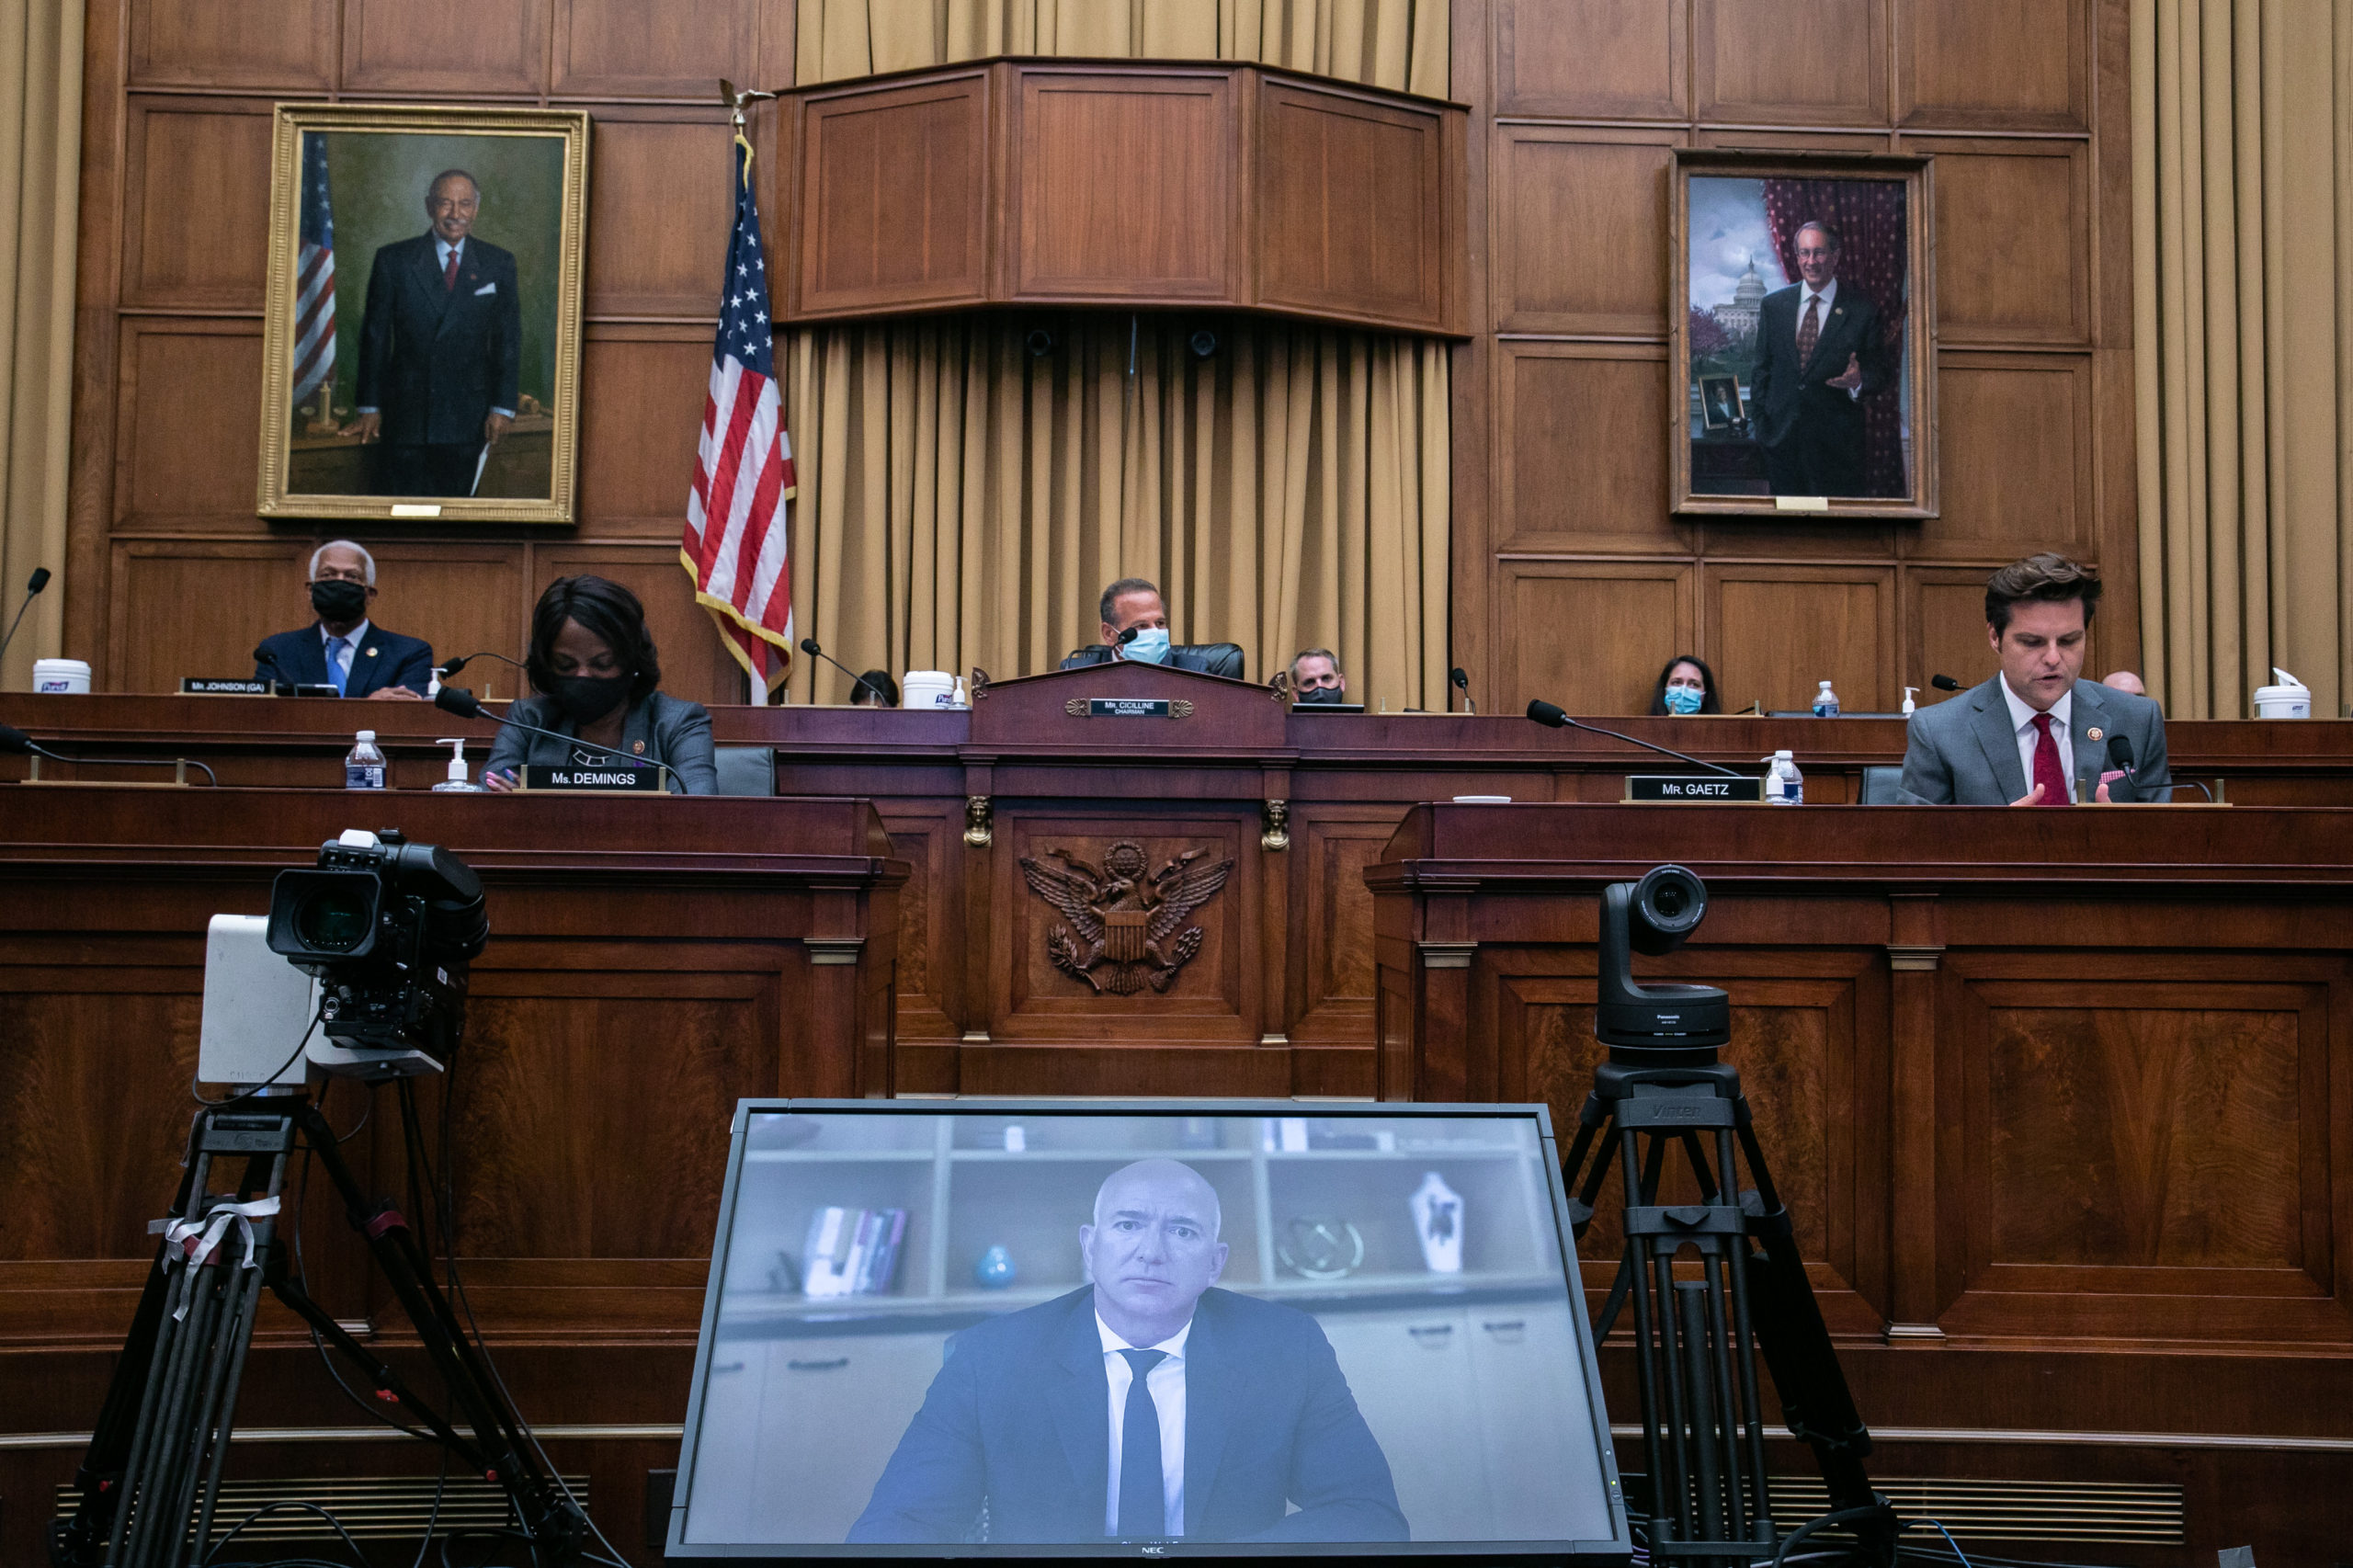 Amazon CEO Jeff Bezos testifies via video conference during the House Judiciary Subcommittee on Antitrust, Commercial and Administrative Law hearing on Online Platforms and Market Power on July 29. (Graeme Jennings/Pool/Getty Images)